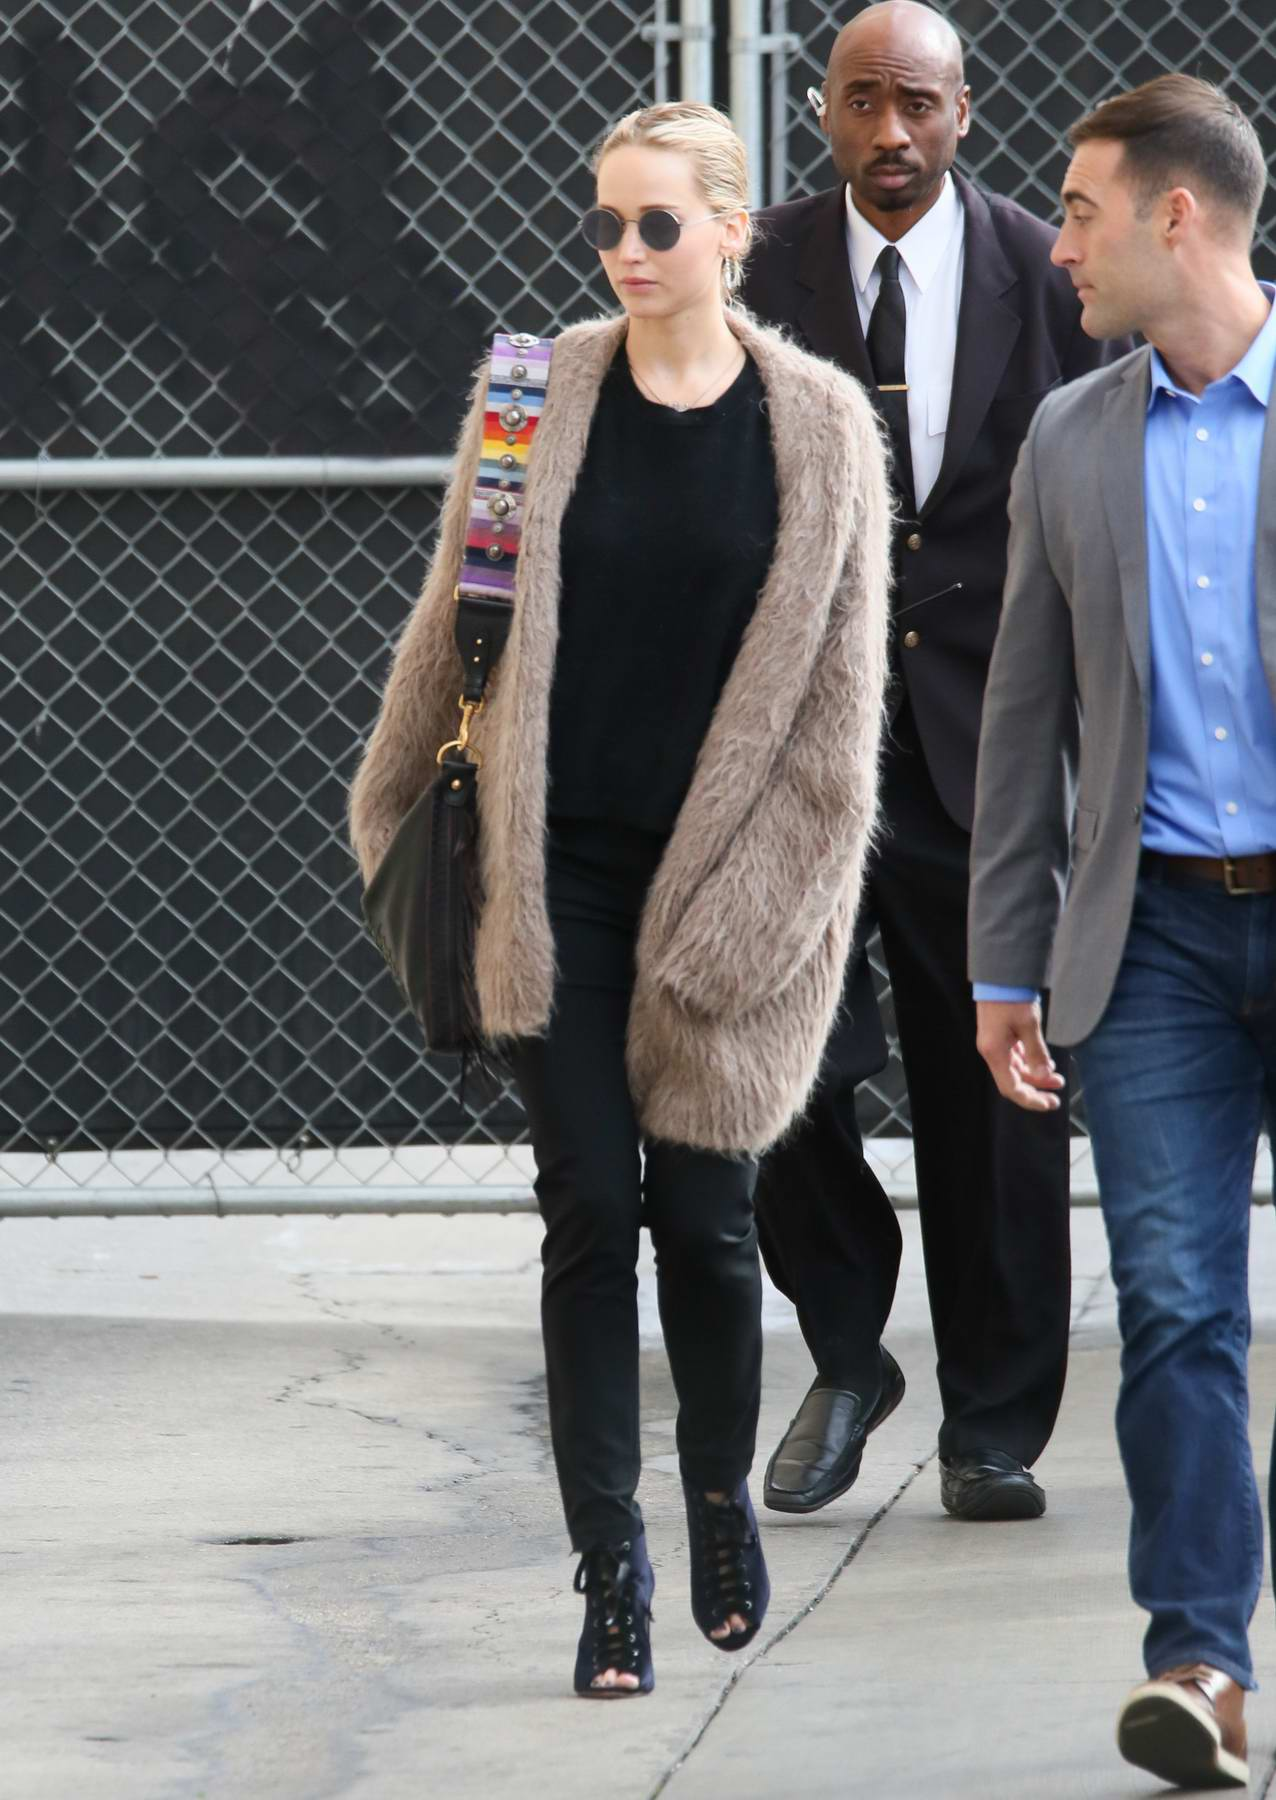 Jennifer Lawrence arriving at 'Jimmy Kimmel Live' in Los Angeles